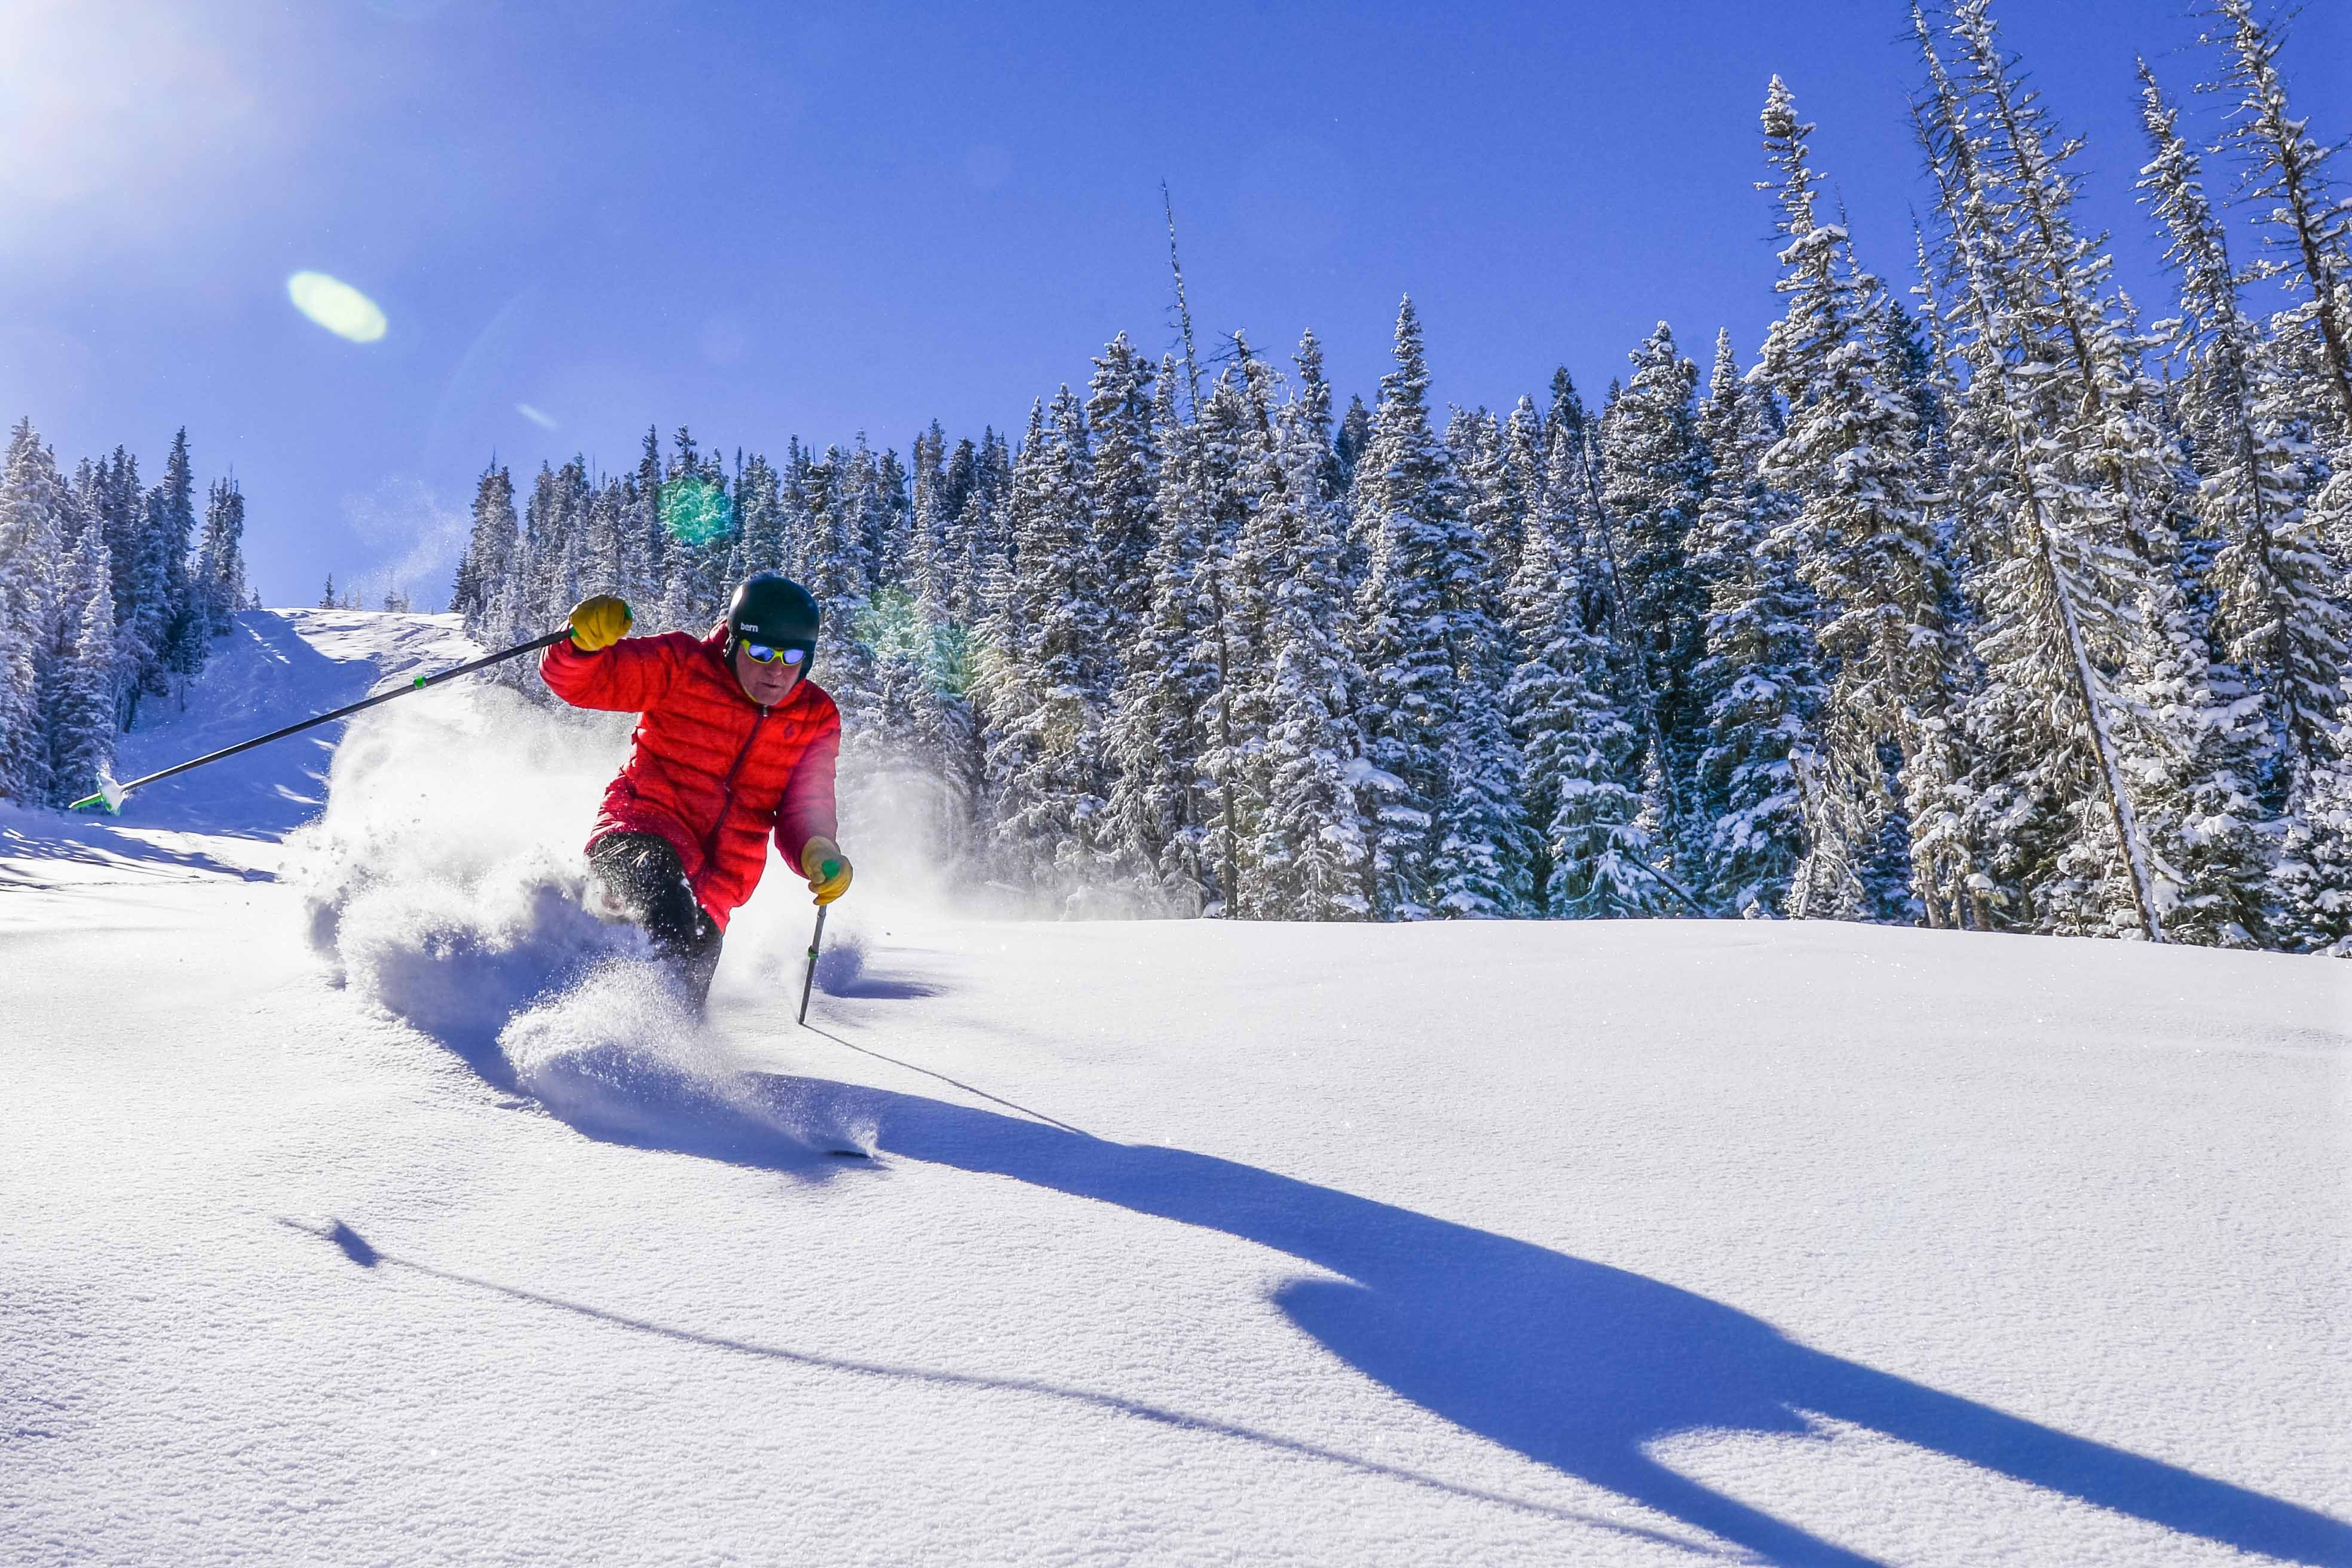 Northern New Mexico's Angel Fire Resort is expanding trails and its terrain park in time for its 50th Anniversary Winter Season, which kicks off December 9, 2016. (Photo: Business Wire)